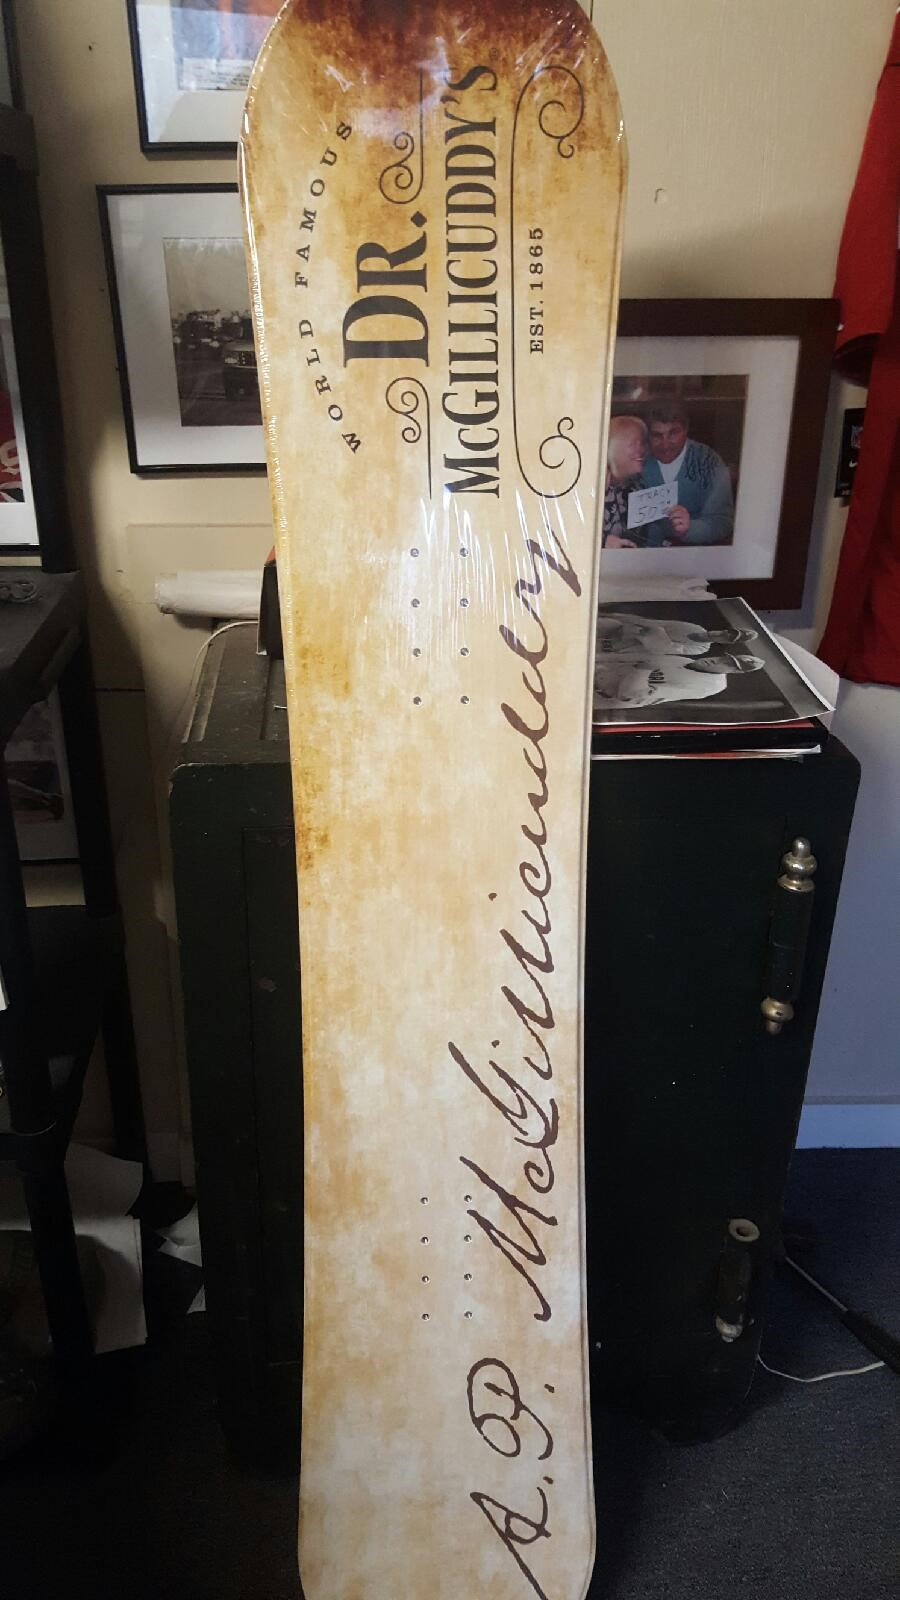 Dr McGillicuddy's Snowboard